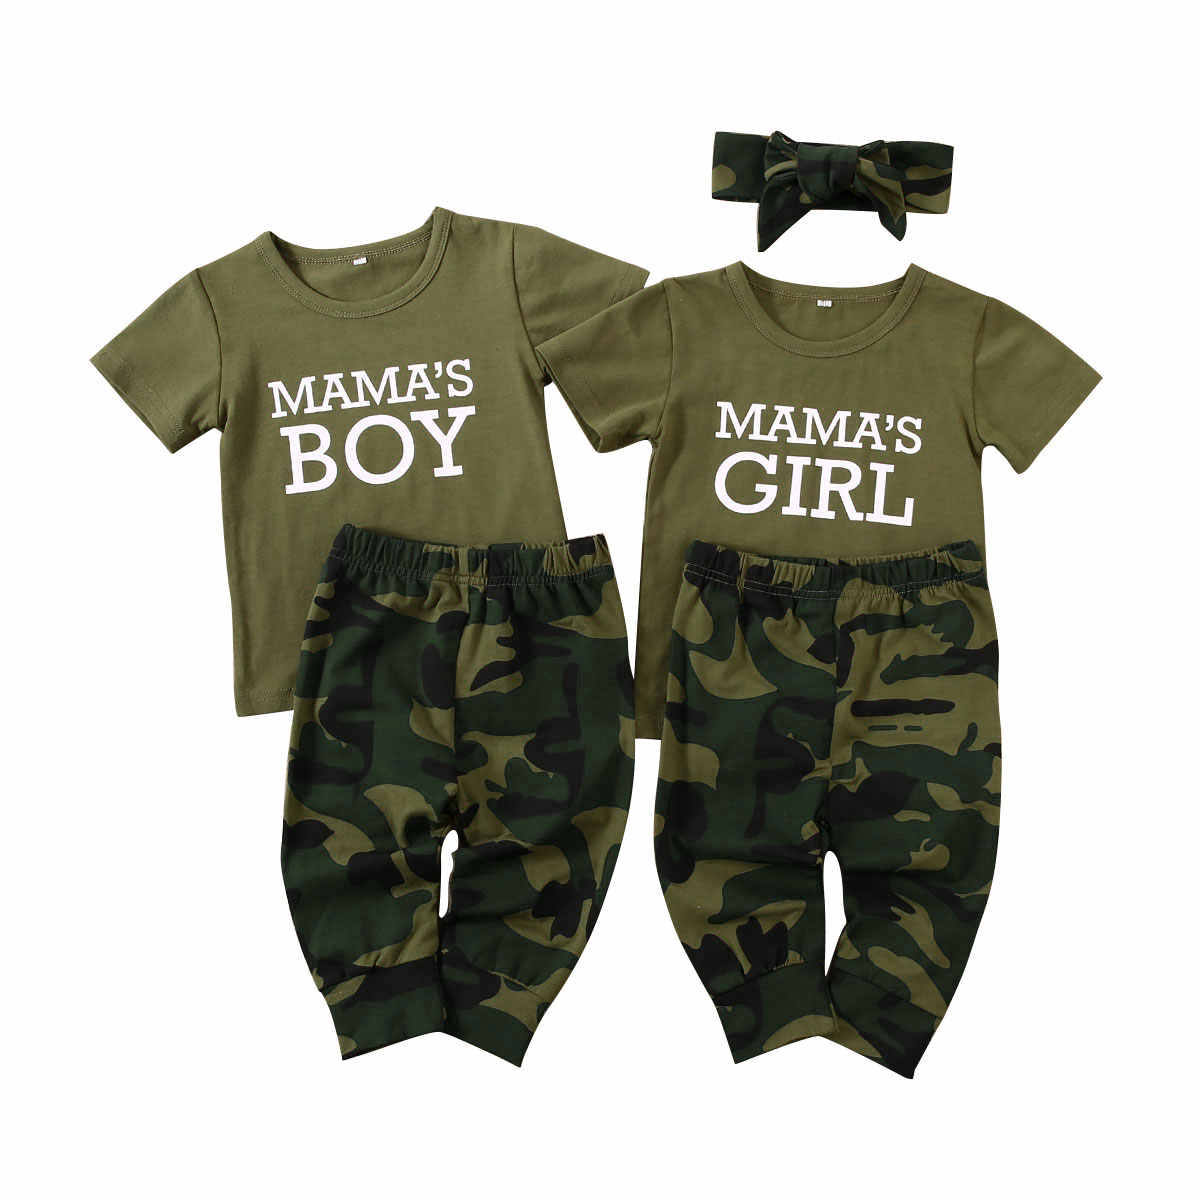 Newborn Toddler Baby Boy Girl Summer Short Sleeve Letter Print Outfits T-shirt Pants Camouflage Outfit